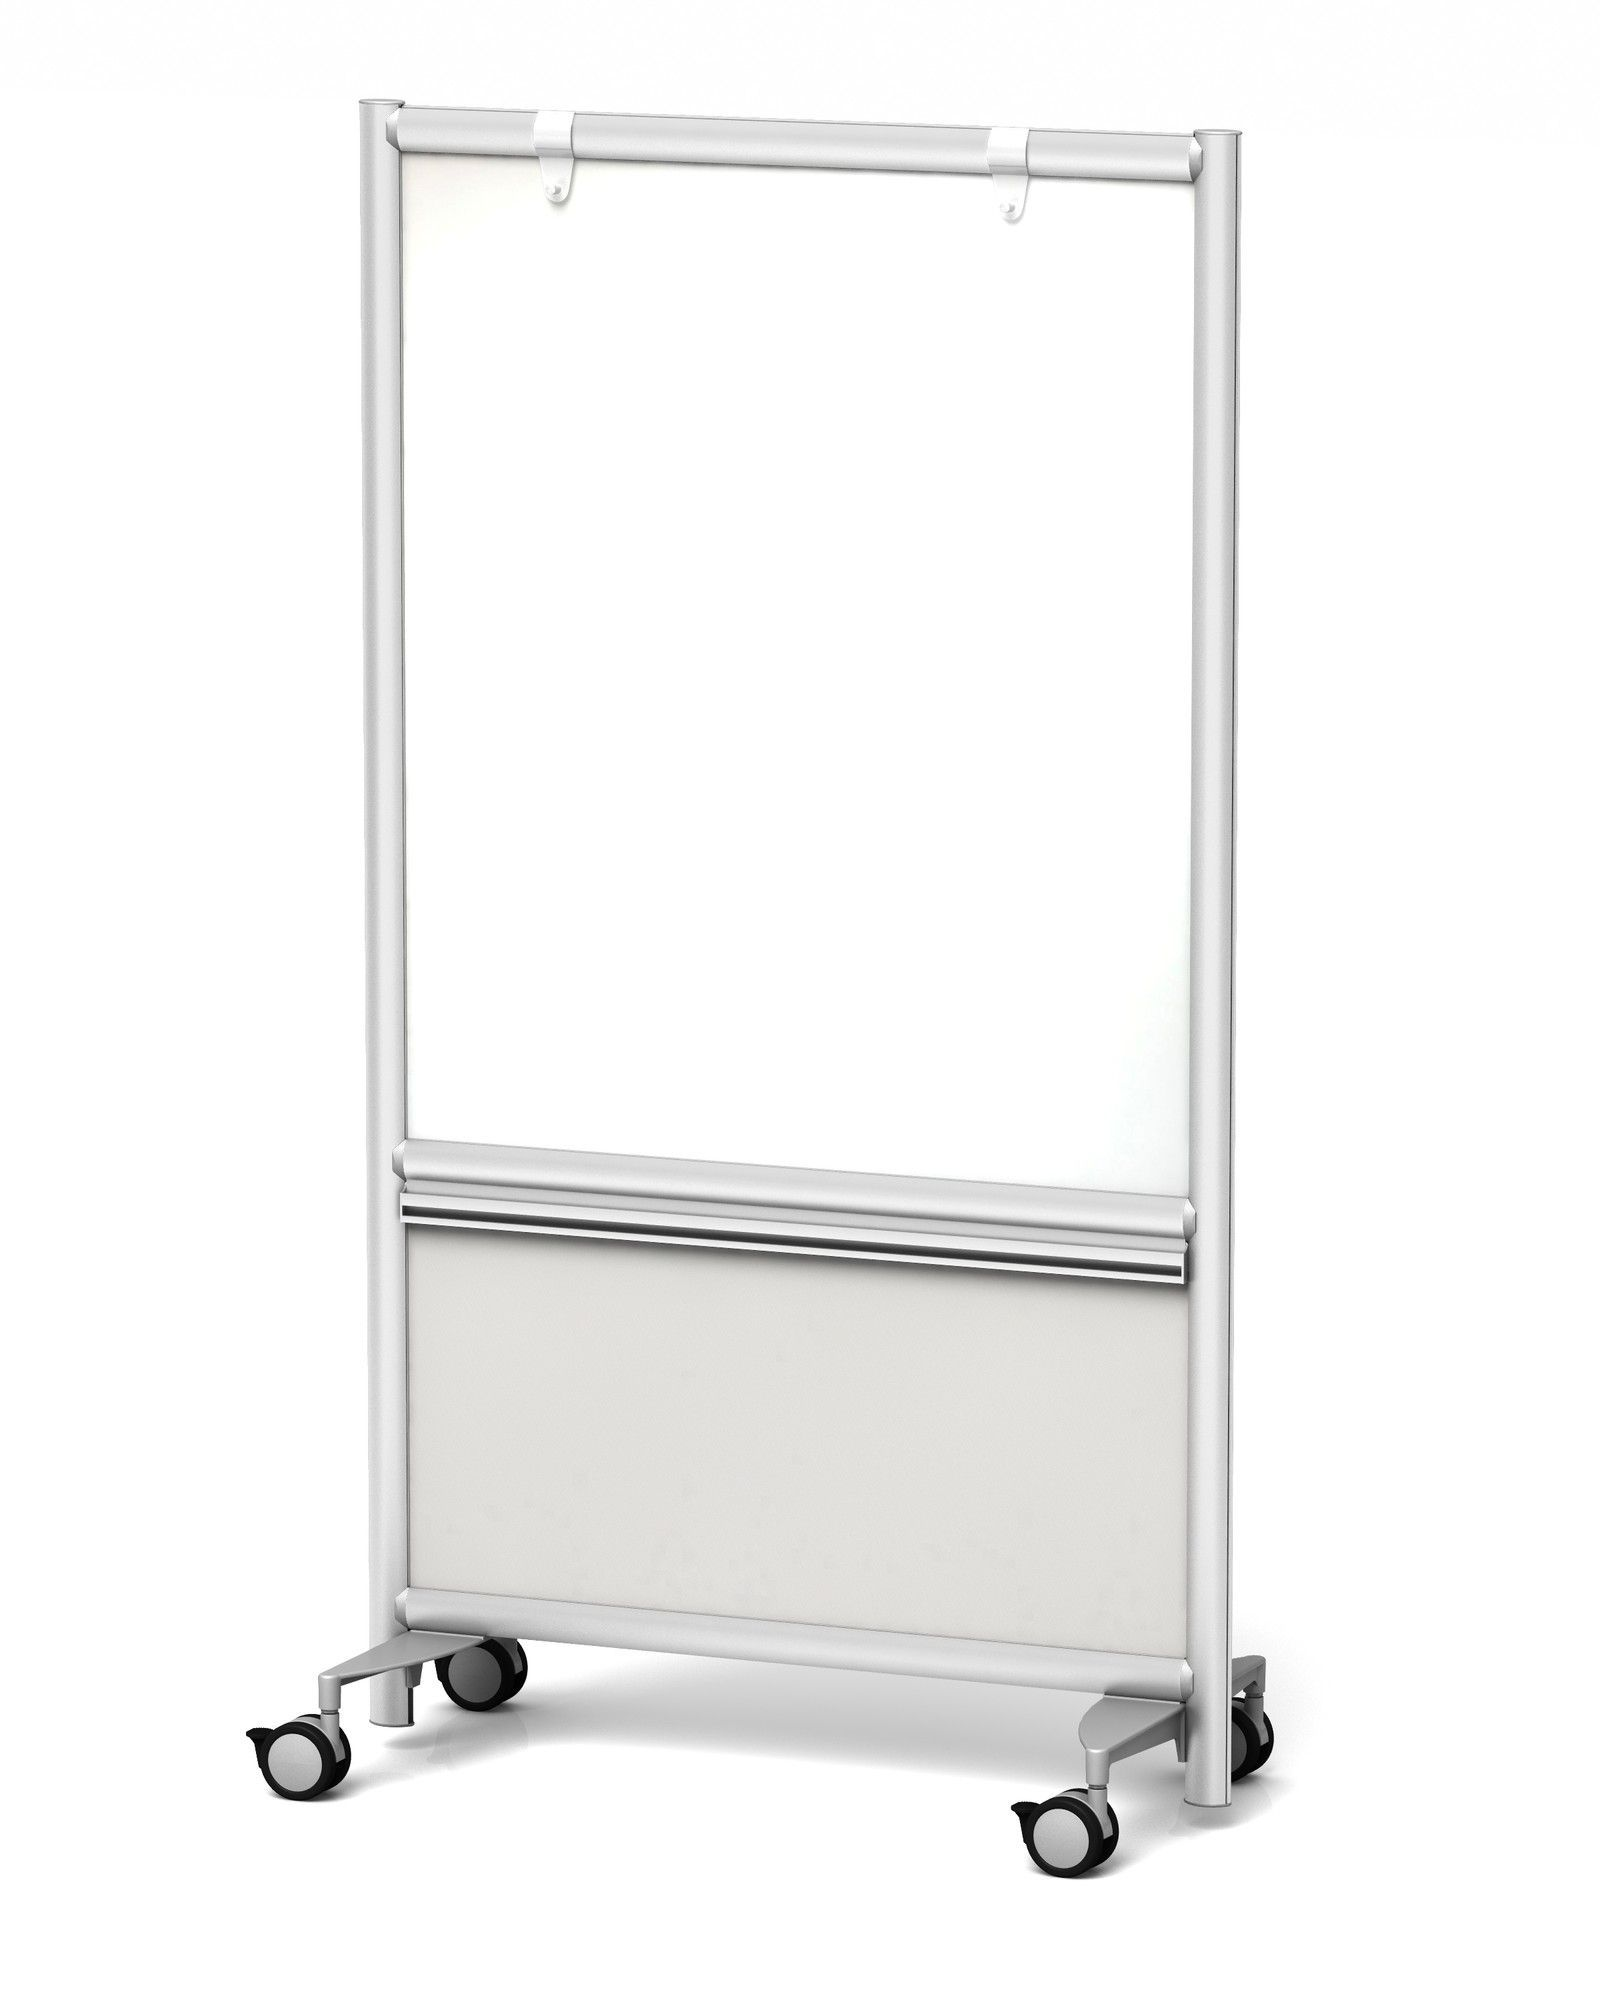 double sided dry erase mobile whiteboard - Rolling Whiteboard